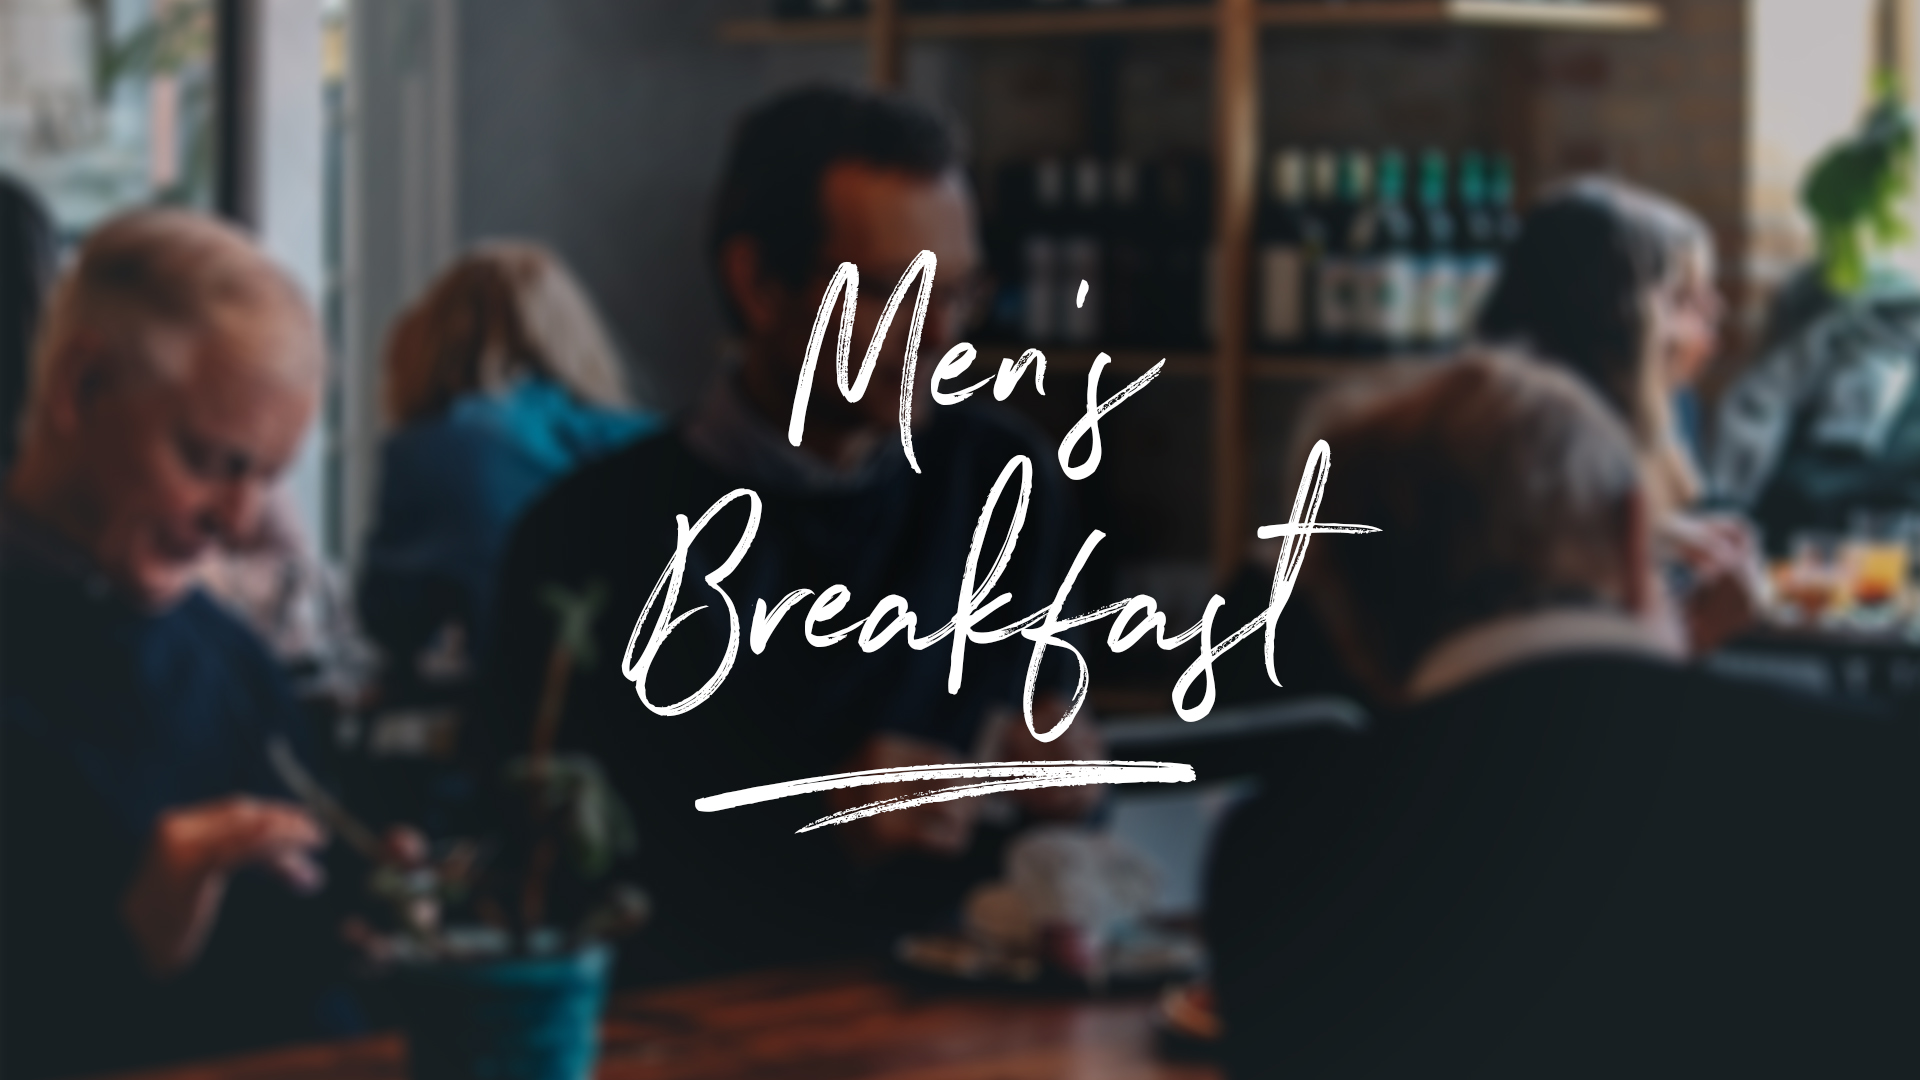 Mens breakfast